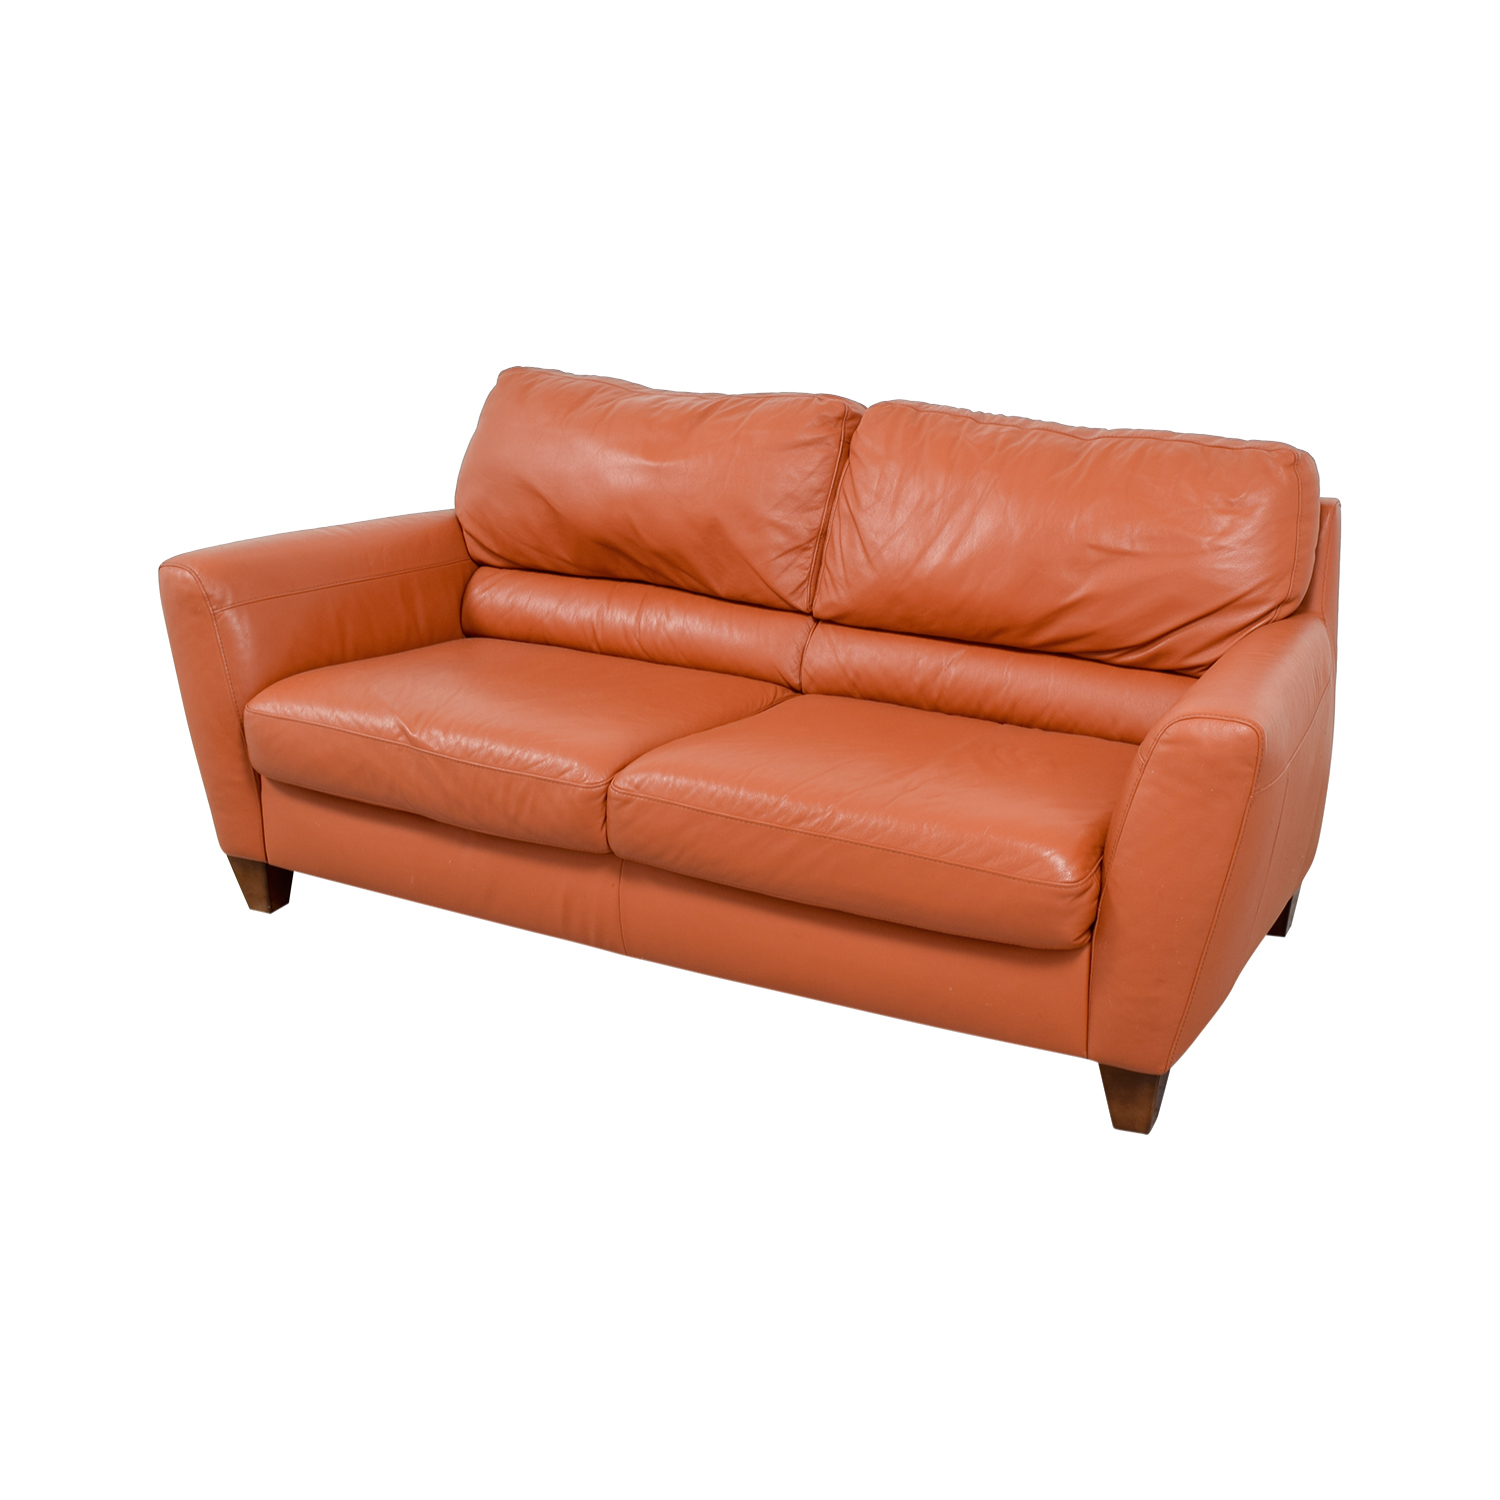 Excellent 76 Off Natuzzi Natuzzi Amalfi Burnt Orange Leather Sofa Sofas Andrewgaddart Wooden Chair Designs For Living Room Andrewgaddartcom